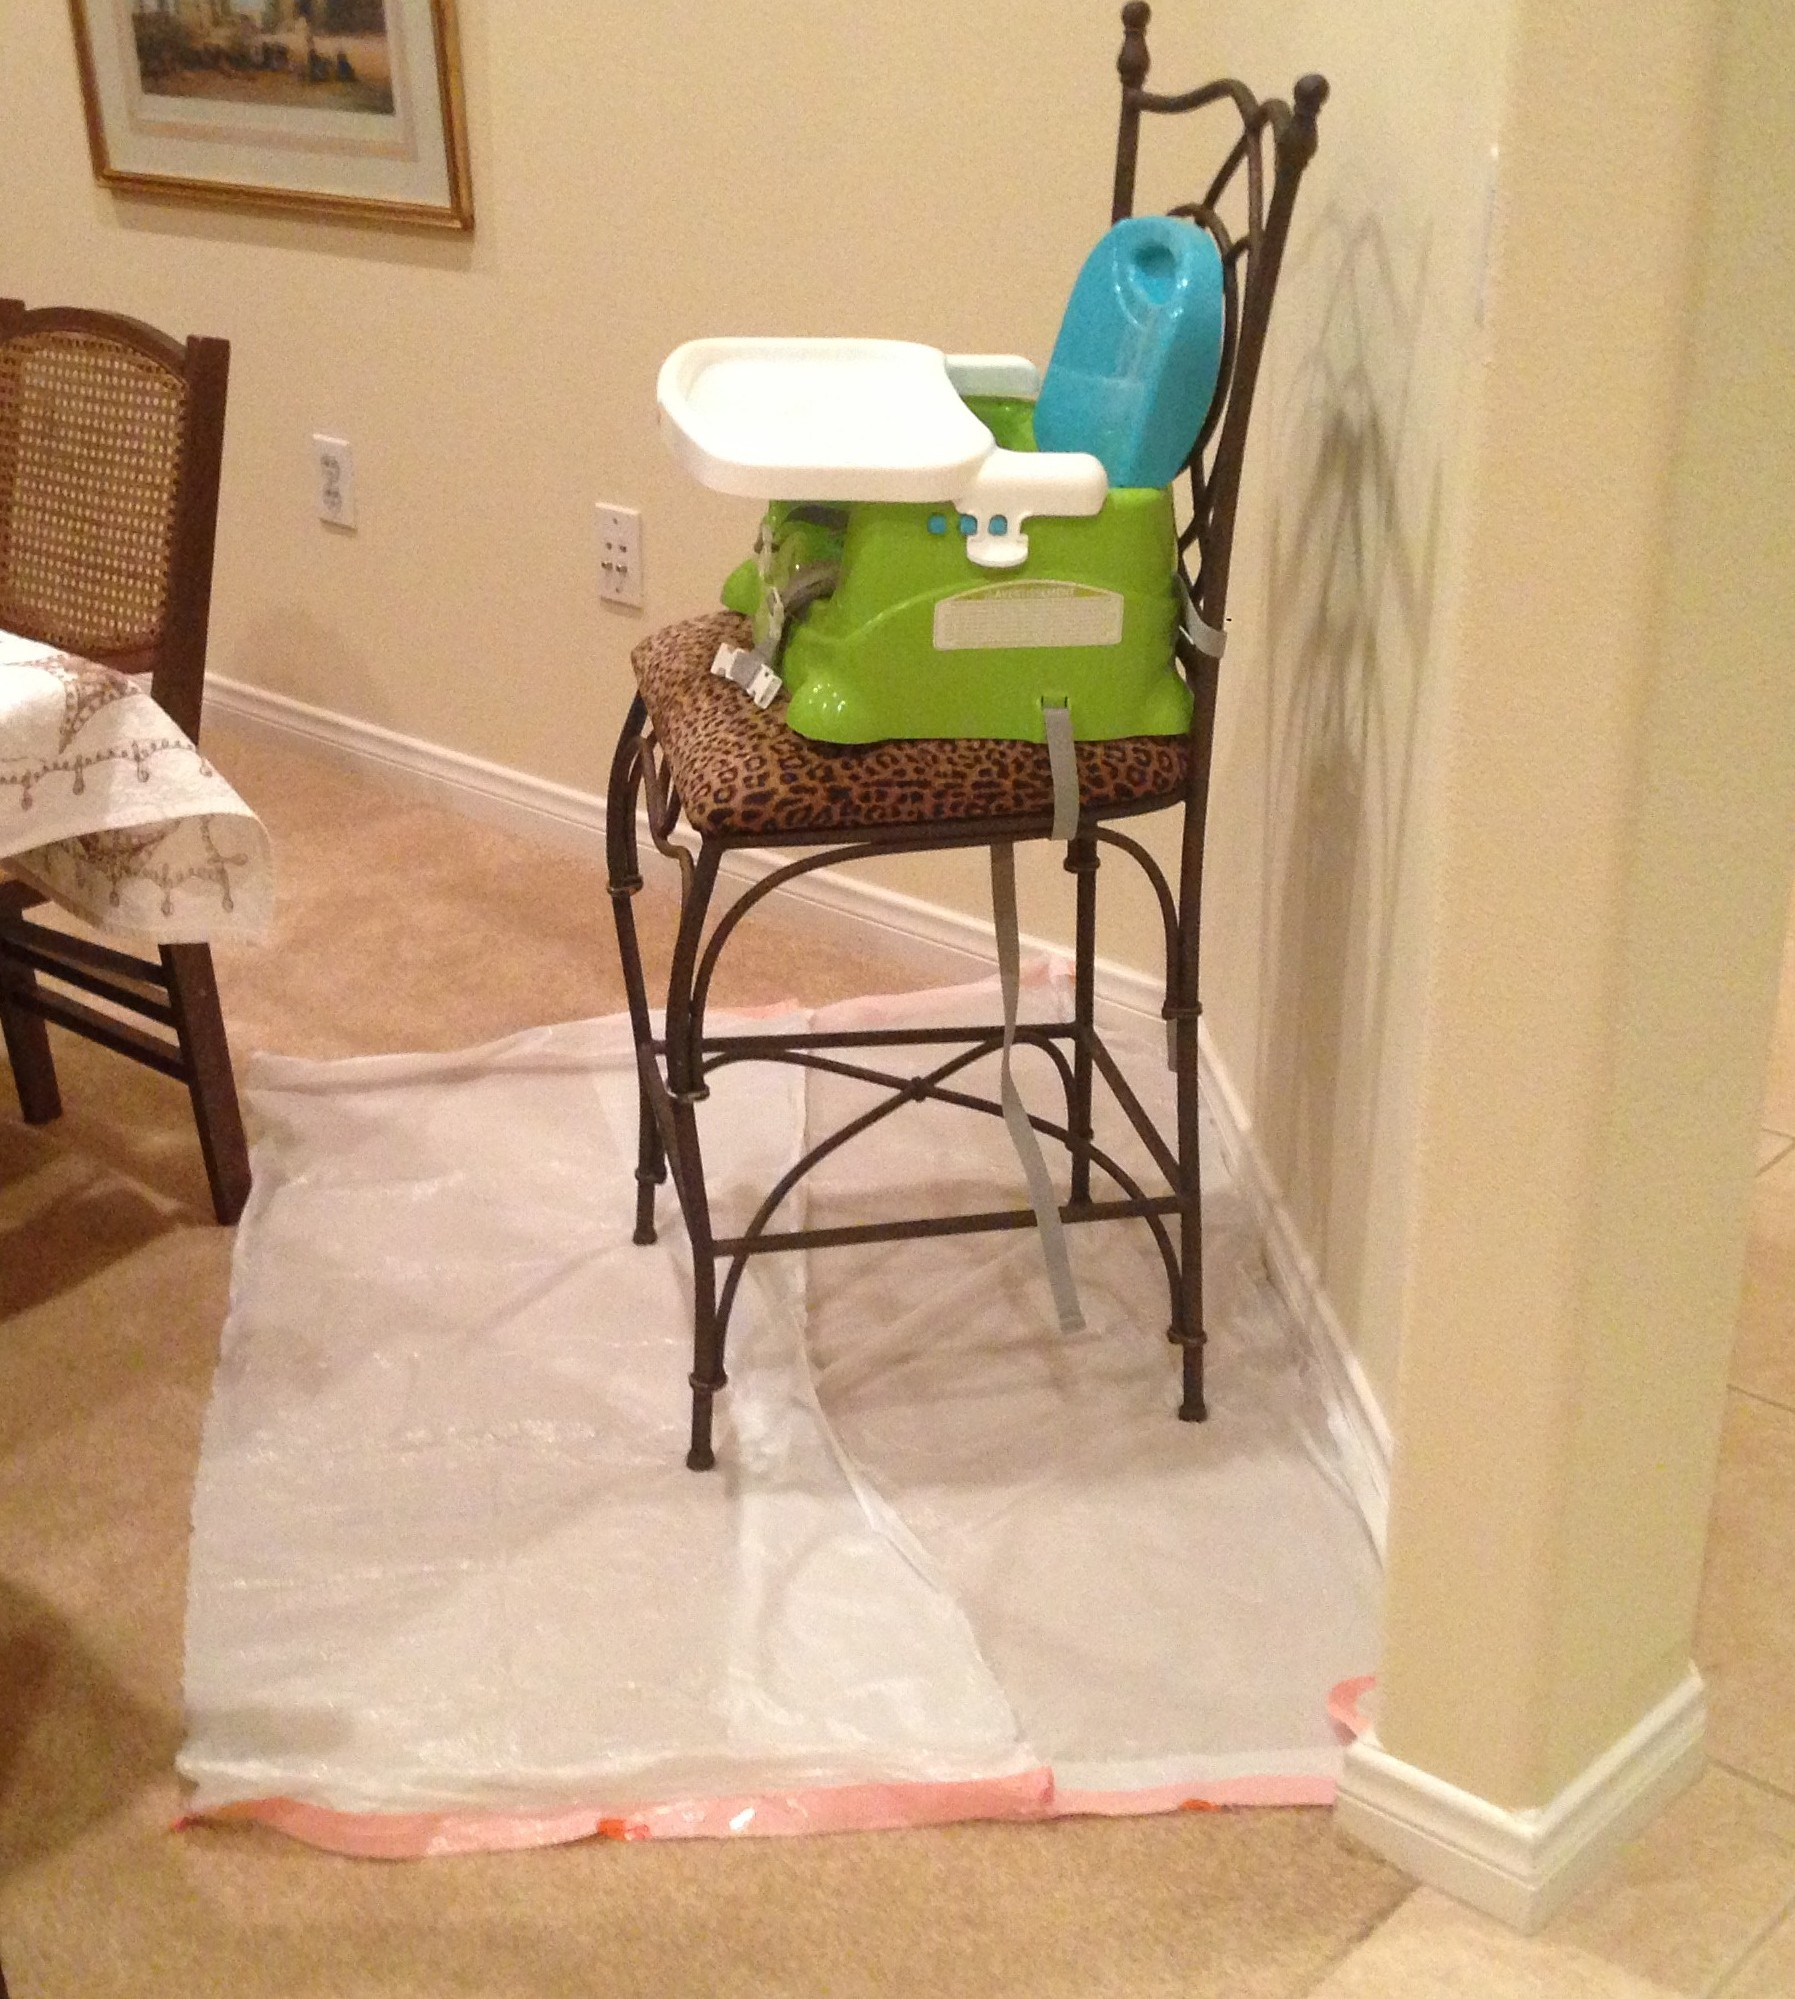 high chair floor mat nz french bergere dining chairs todays hint diy disposable splat mats  mama